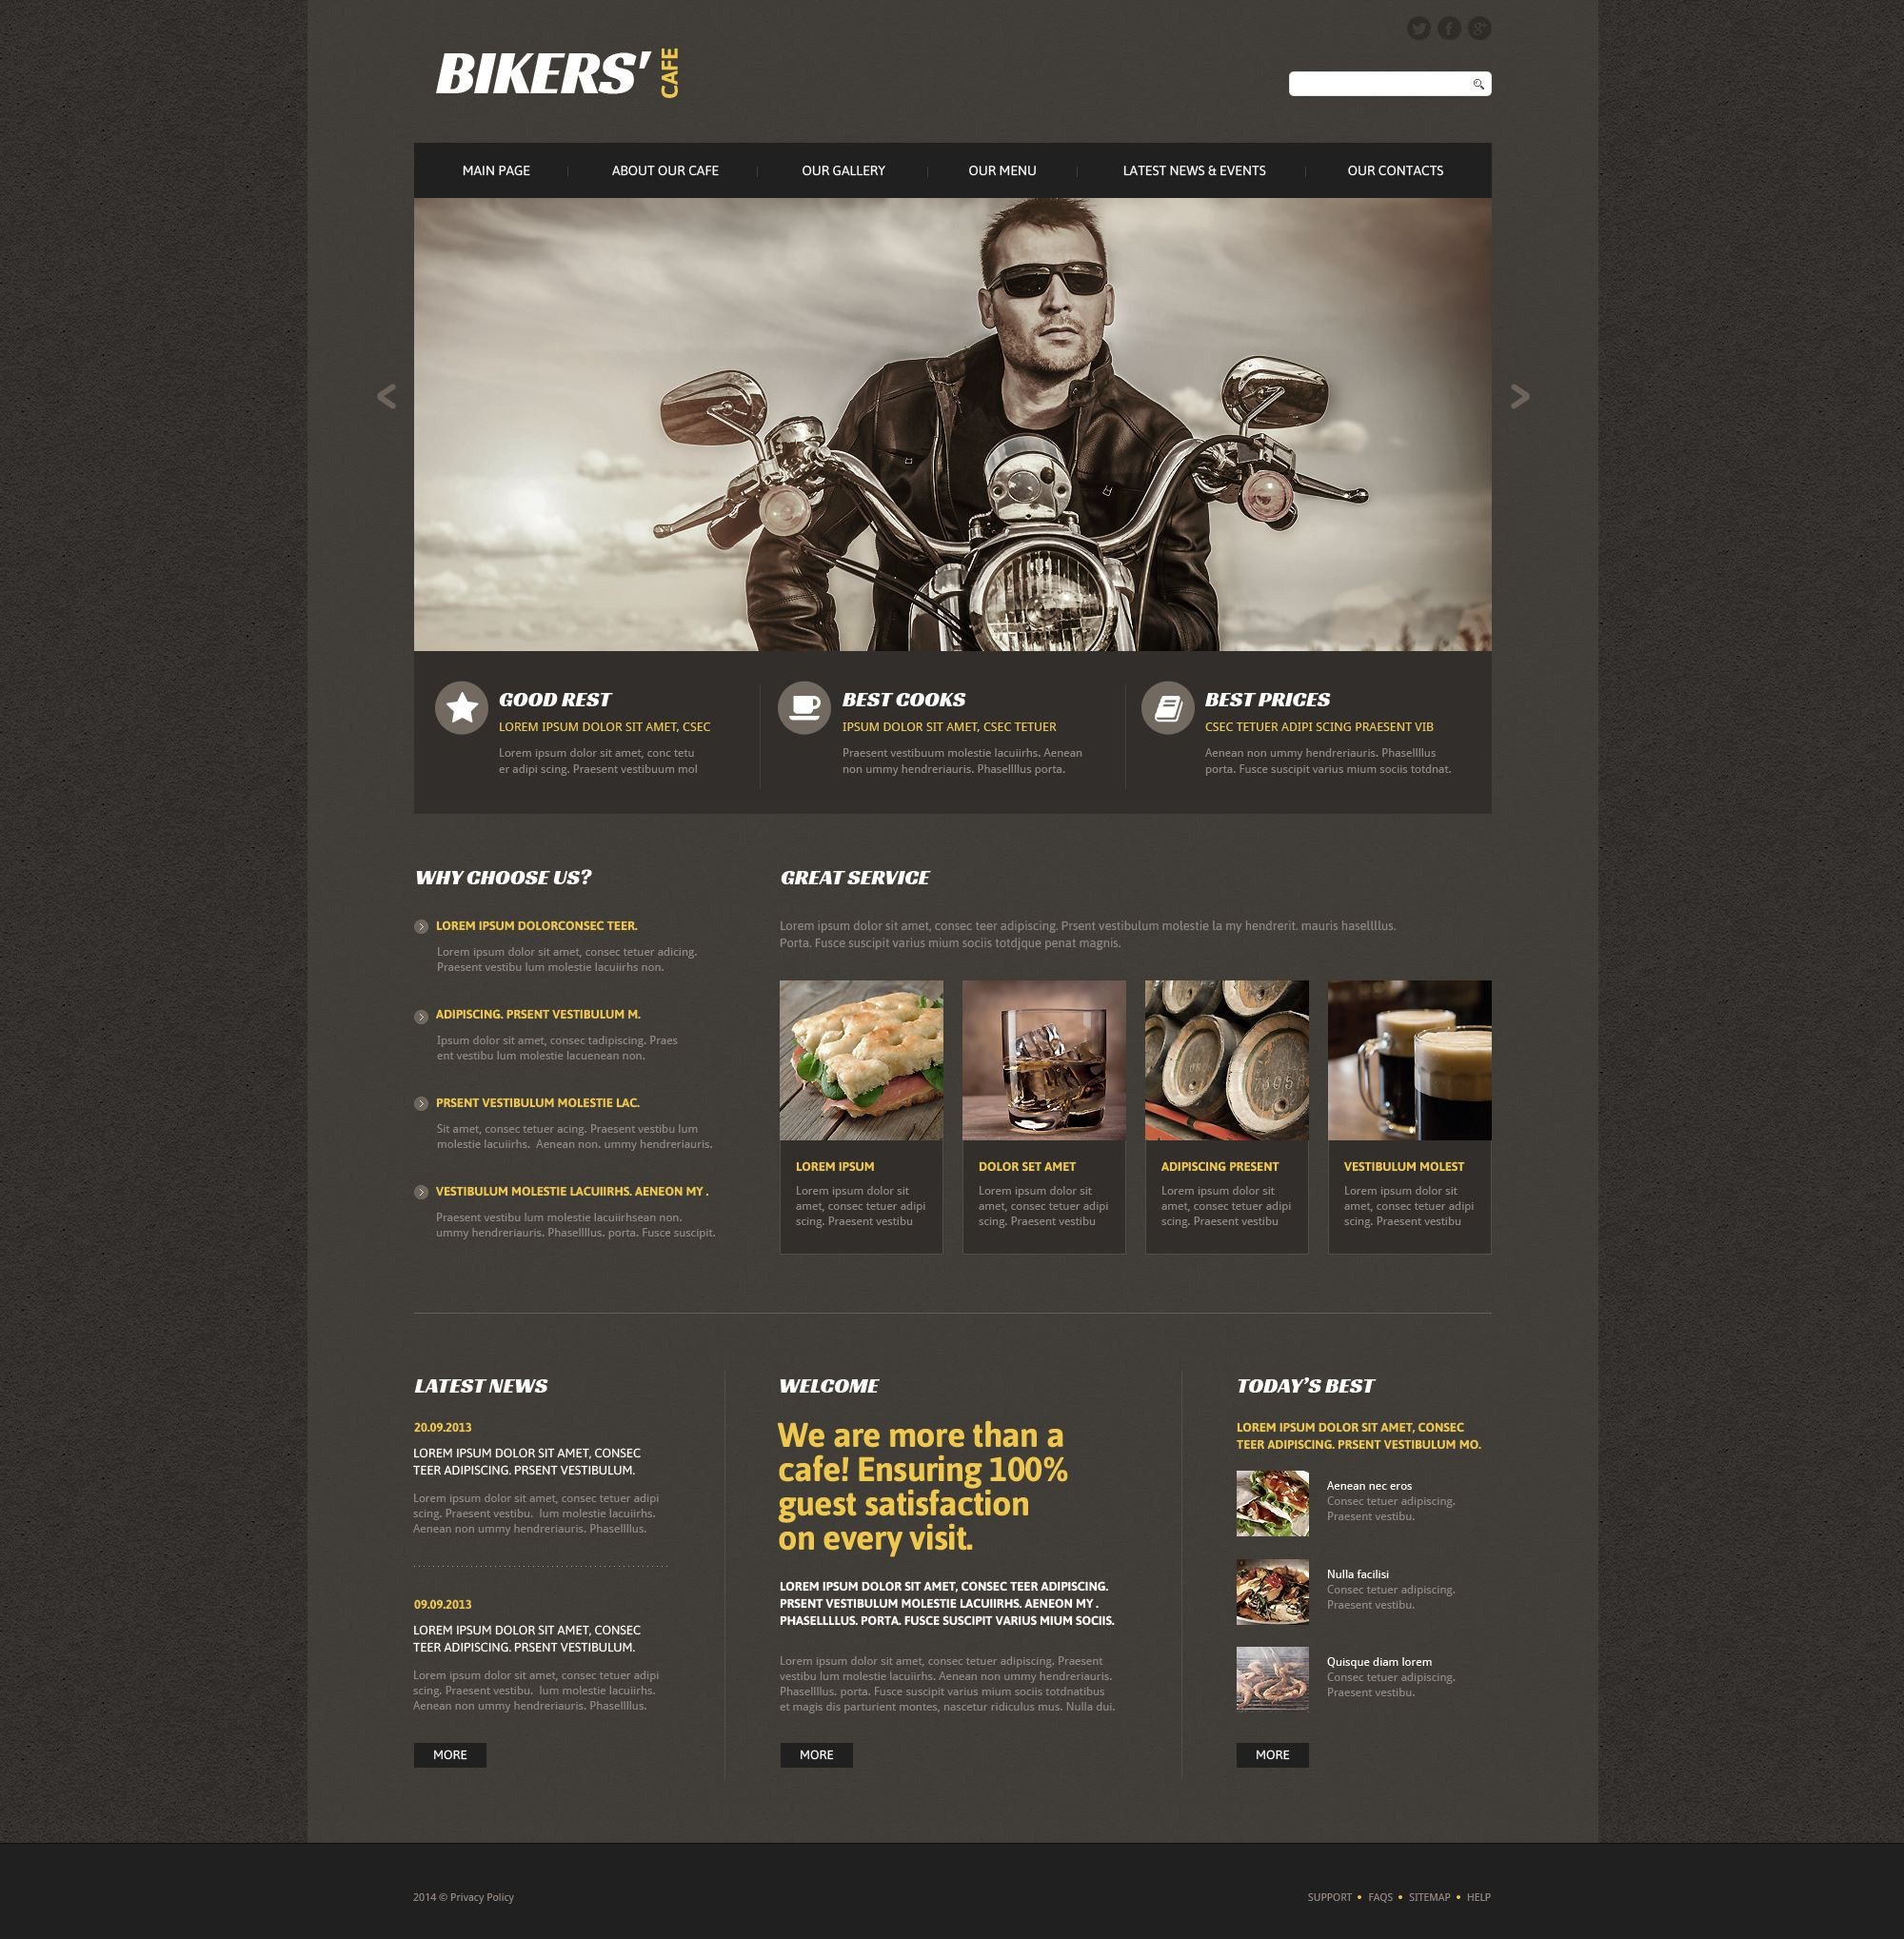 The Bikers Biker Cafe Restaurant Responsive Javascript Animated Design 53470, one of the best website templates of its kind (cafe and restaurant, most popular), also known as Bikers biker cafe restaurant website template, meat website template, beef website template, pork website template, chicken website template, roast website template, barbecue website template, grill website template, meal website template, snack website template, food website template, brisket website template, shoulder website template, steak and related with Bikers biker cafe restaurant, meat, beef, pork, chicken, roast, barbecue, grill, meal, snack, food, brisket, shoulder, steak, etc.